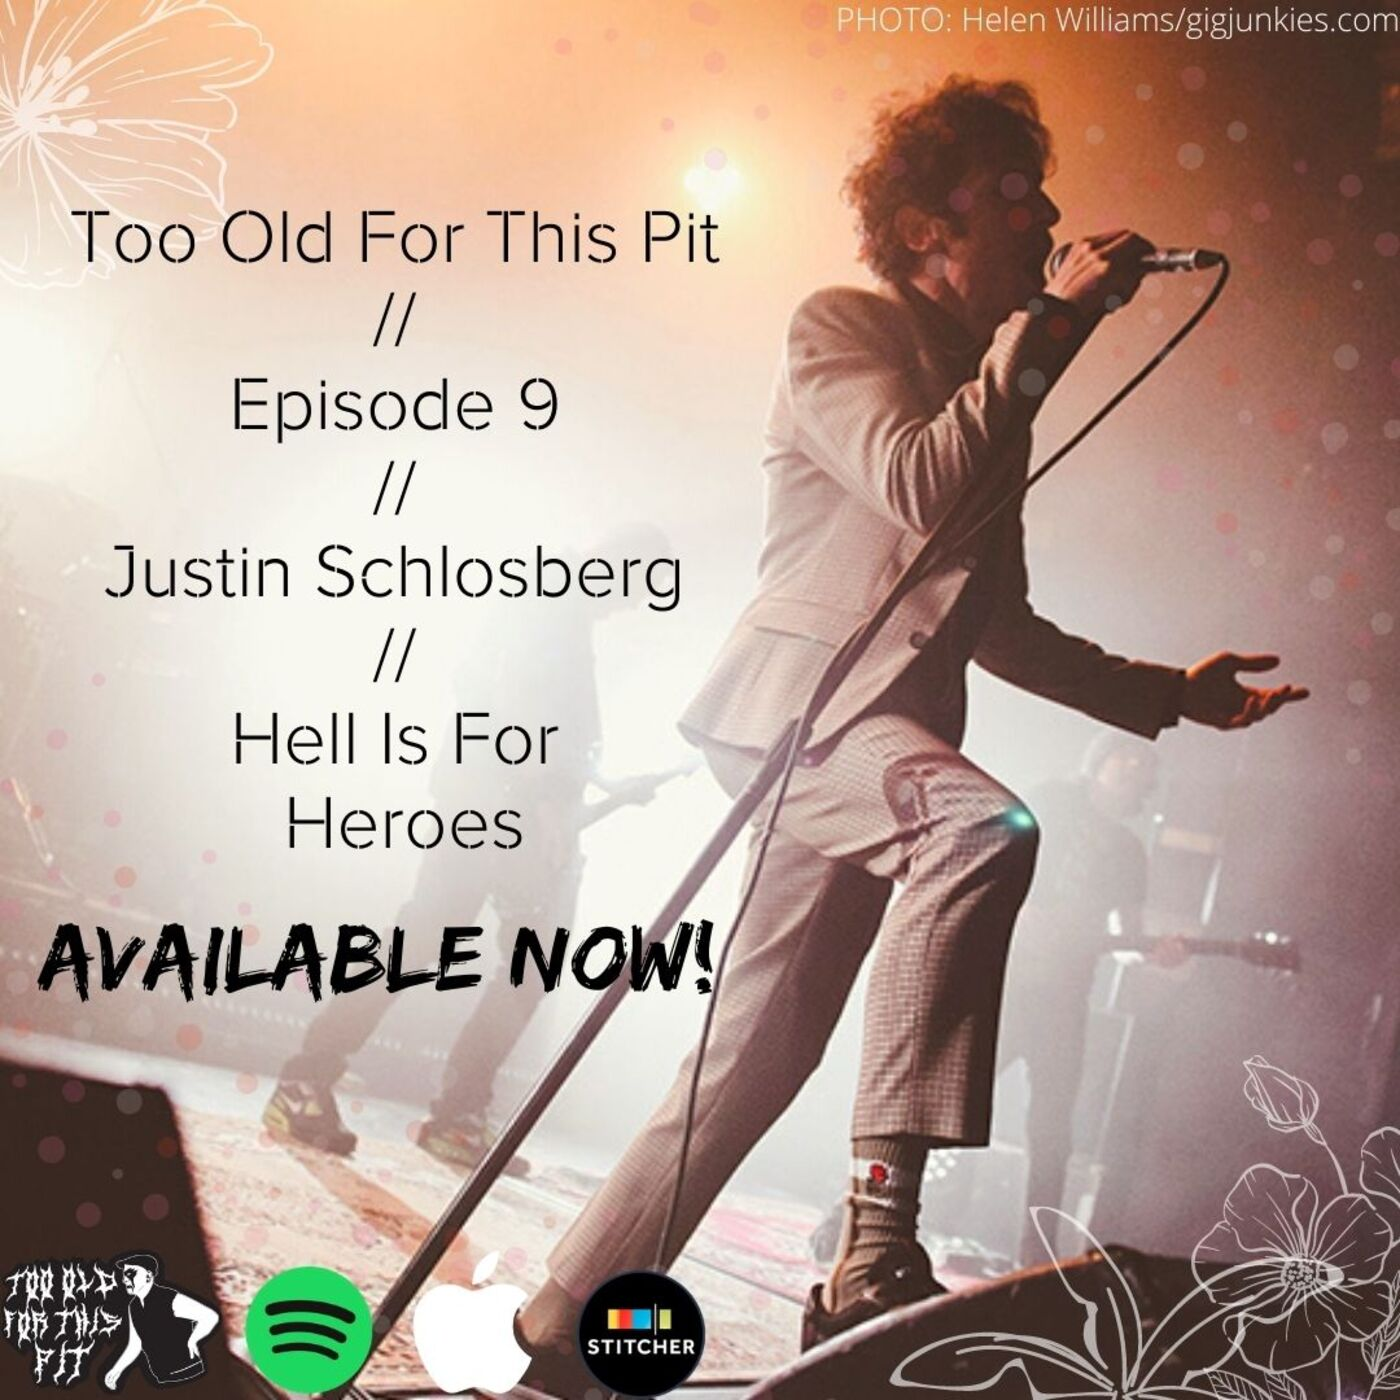 Episode 9 - Justin Schlosberg (Hell Is For Heroes, August Spies)